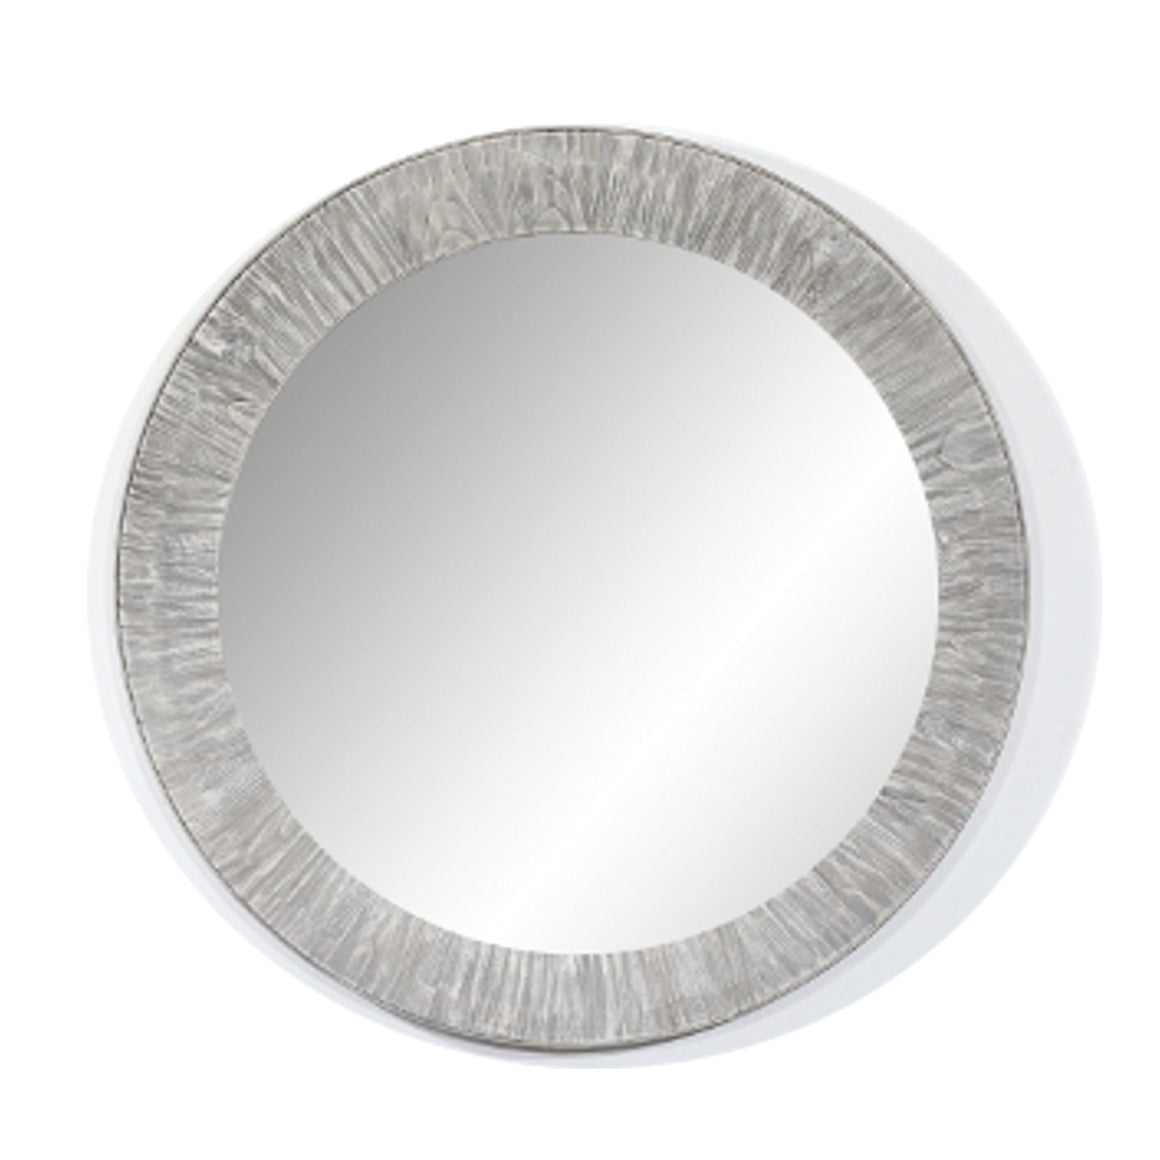 "35"" RUSTIC SOLID FIR MIRROR IN GREY DRIFTWOOD(ROUND)"